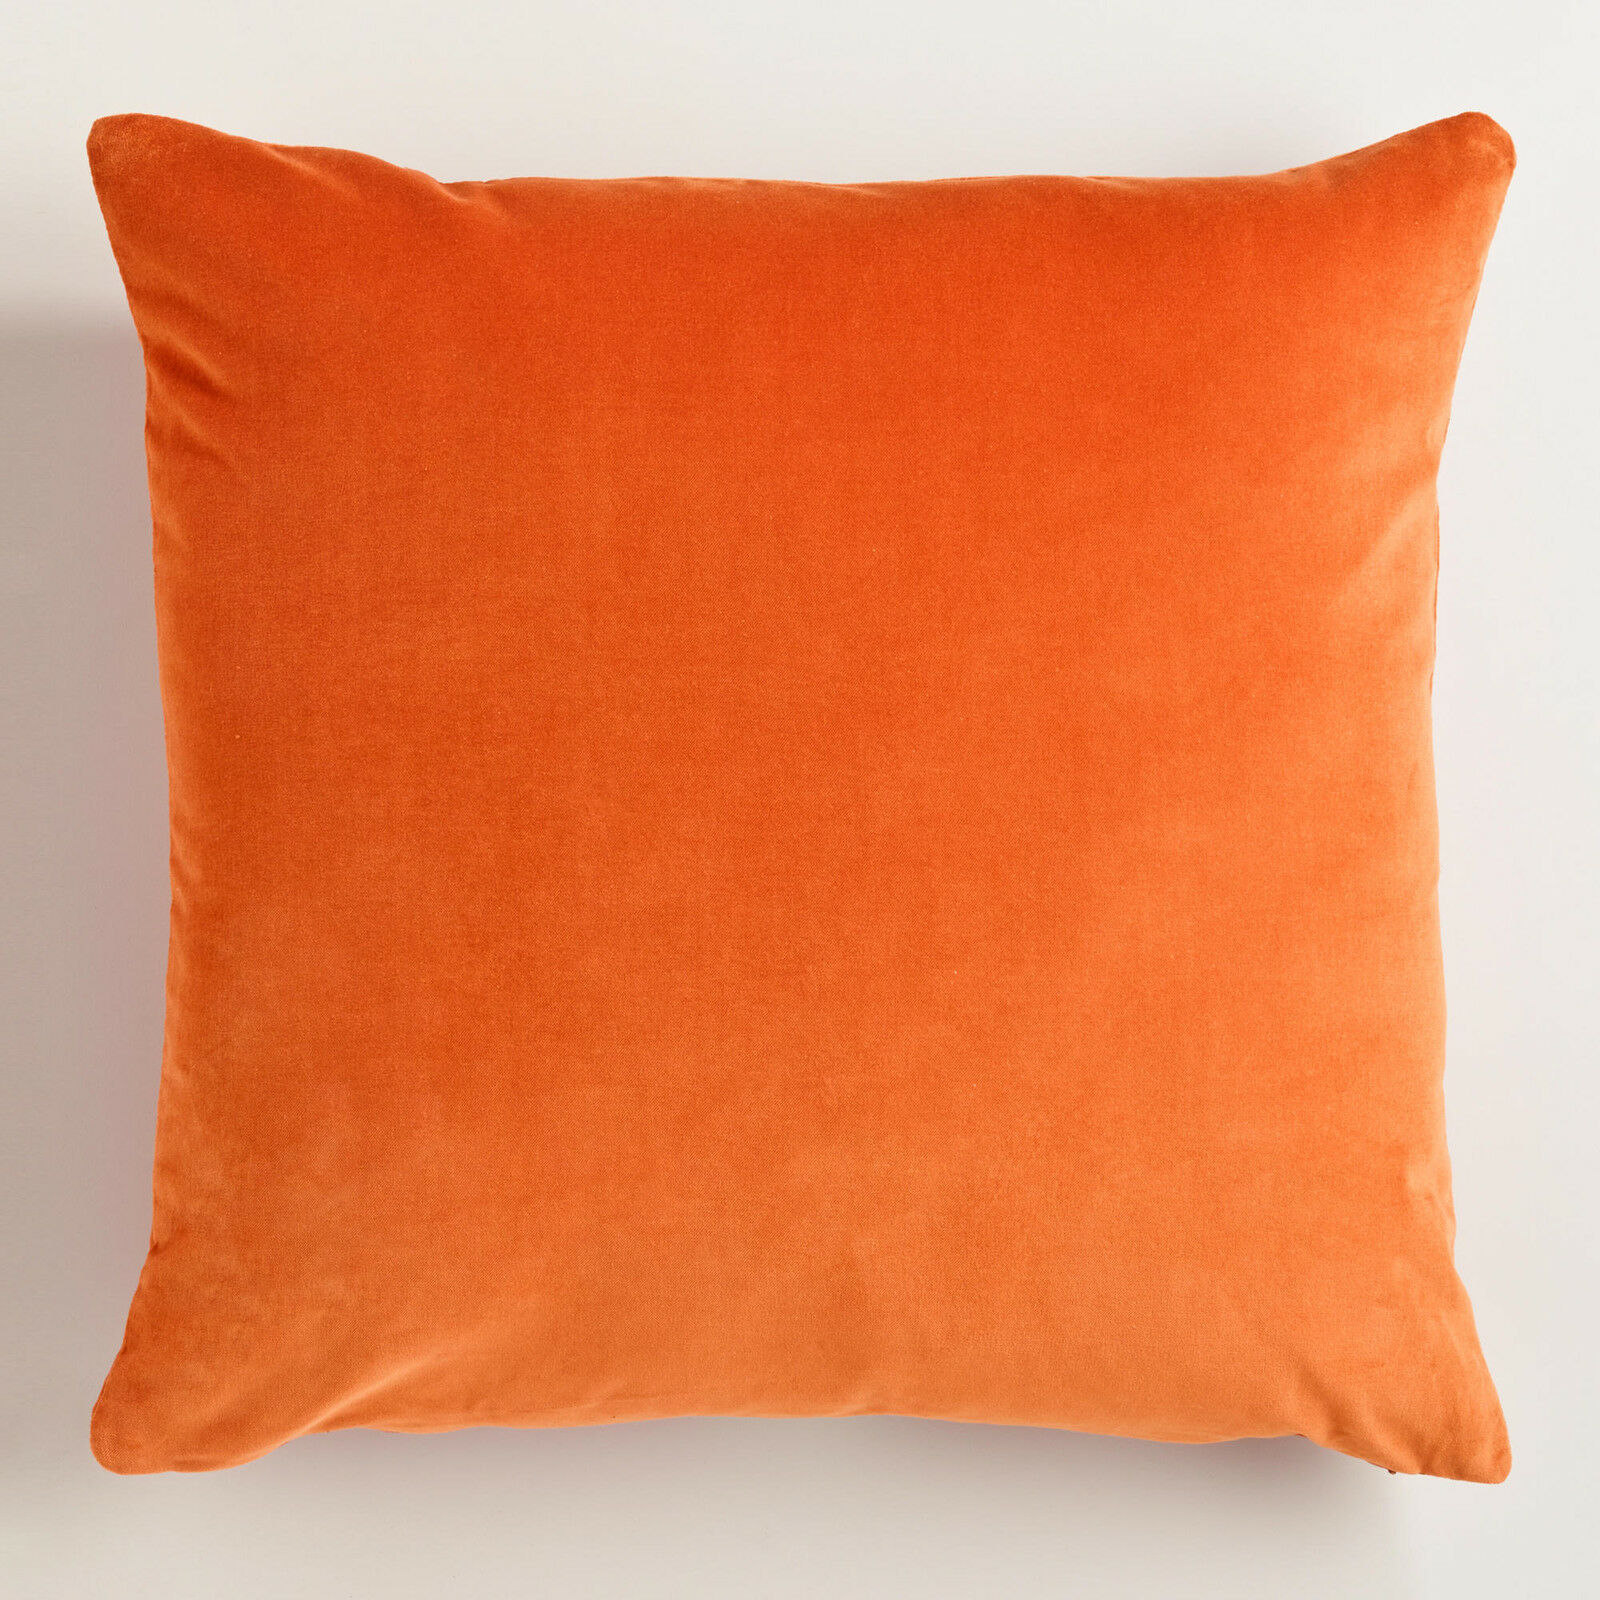 Your Guide to Buying the Right Throw Pillows for Your Couch eBay